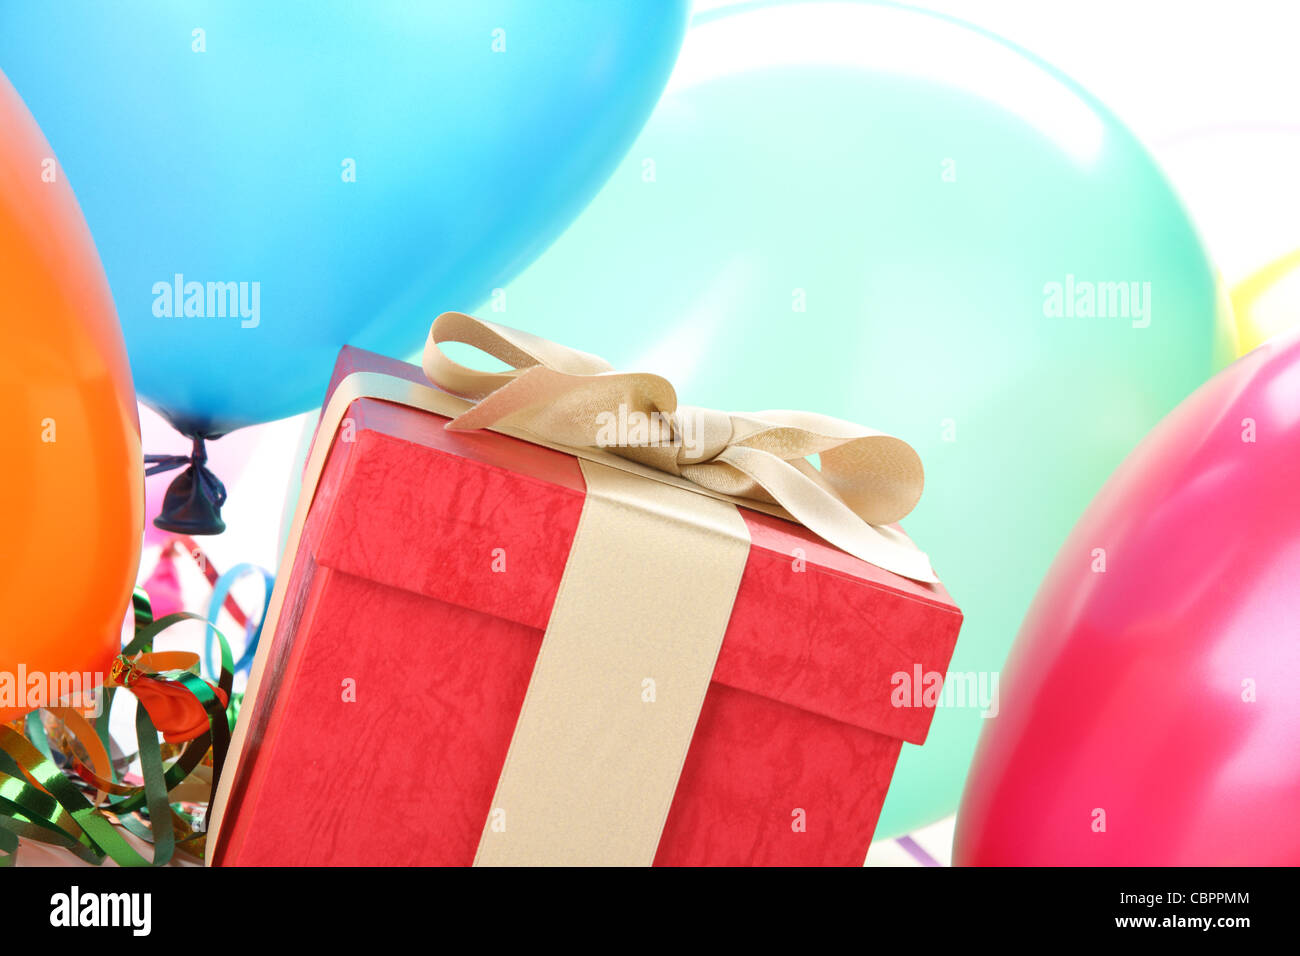 New Year's gift with balloons. - Stock Image